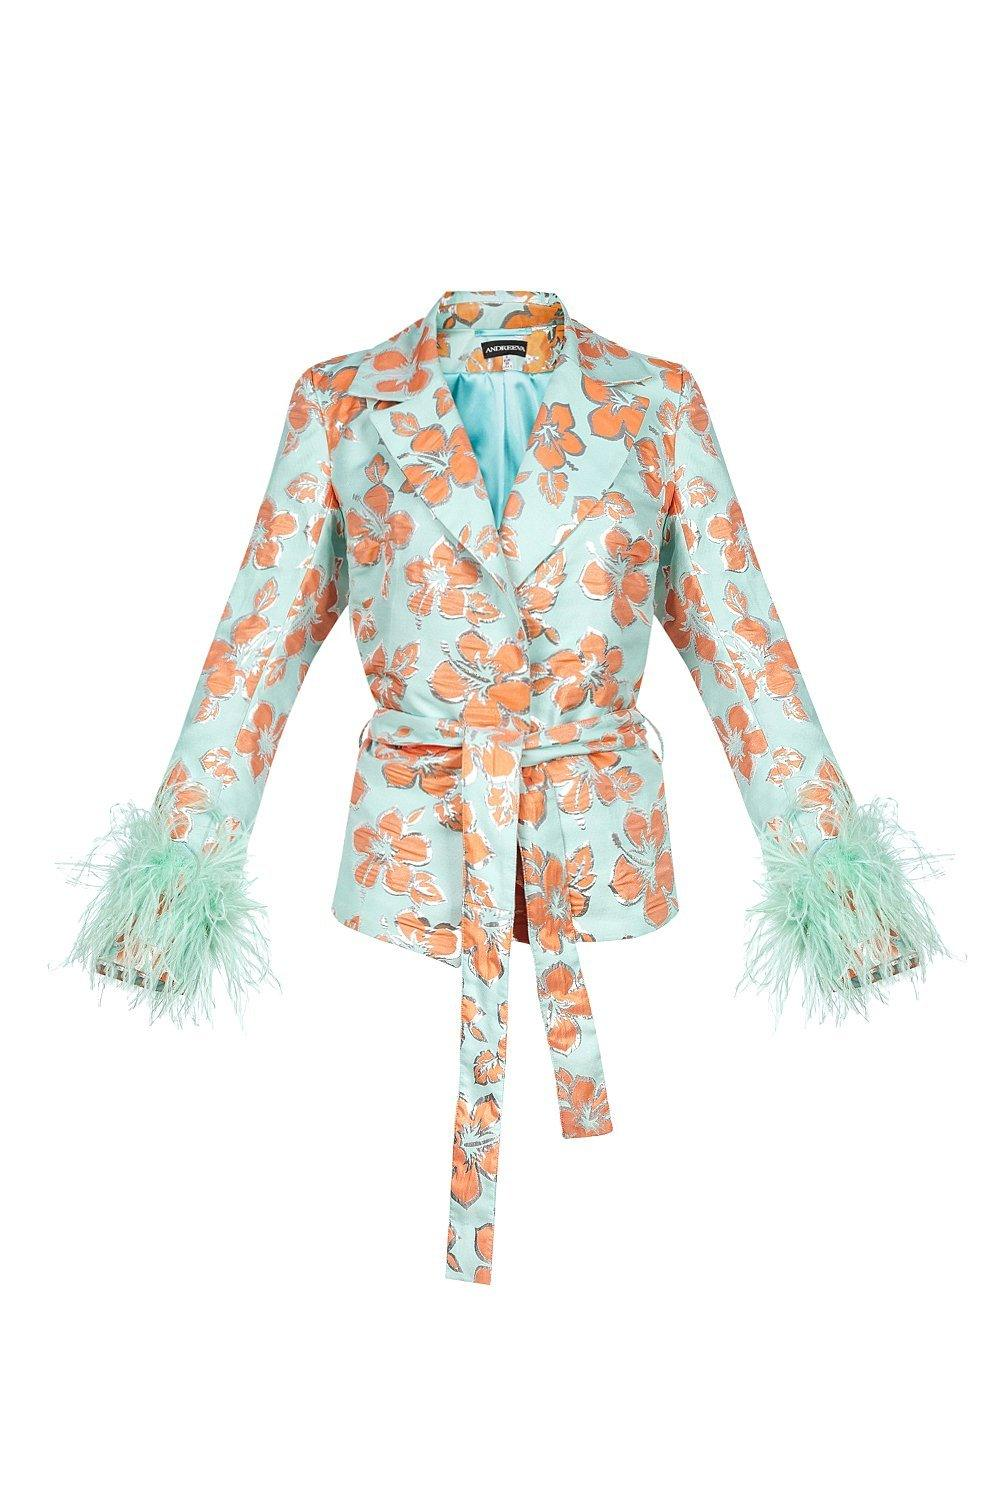 Vanilla jacquard jacket with detachable feathers cuffs